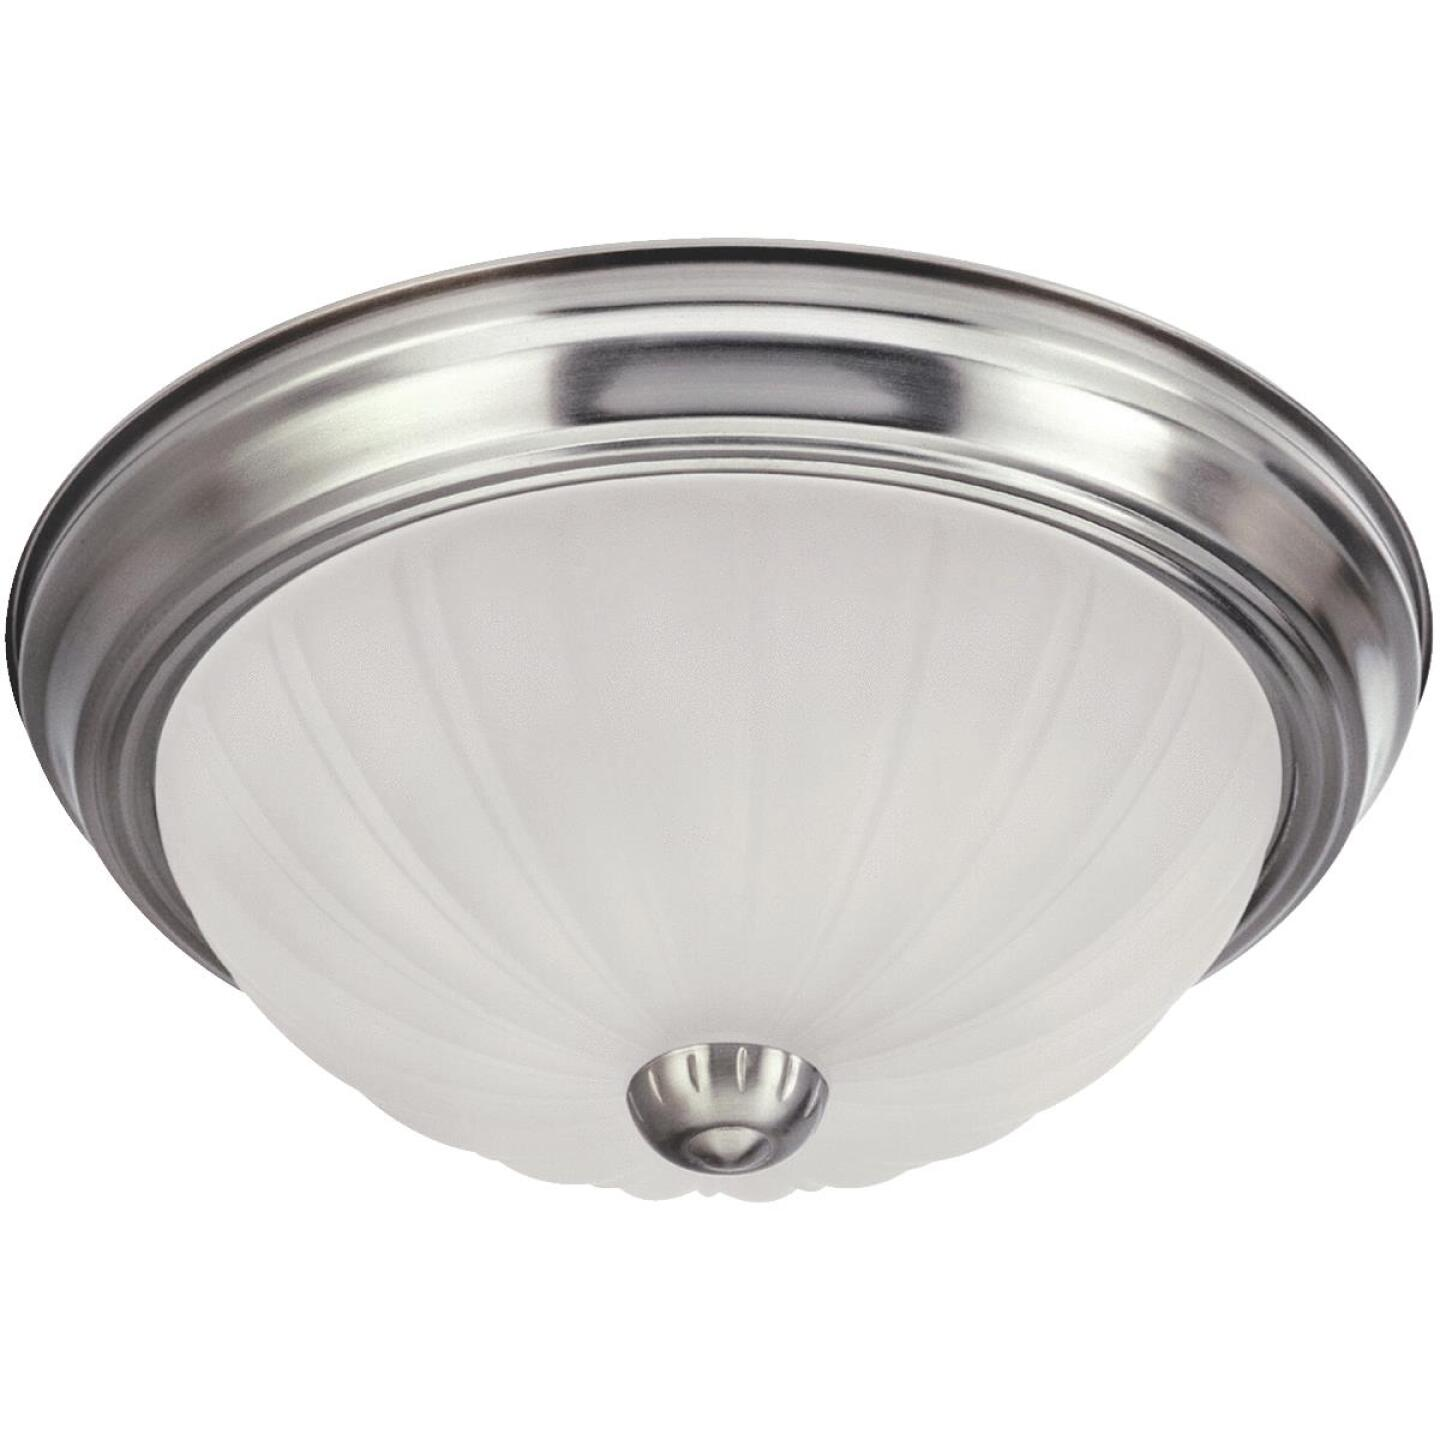 Home Impressions 13 In. Brushed Nickel Incandescent Flush Mount Ceiling Light Fixture with Frosted Melon Glass Image 1